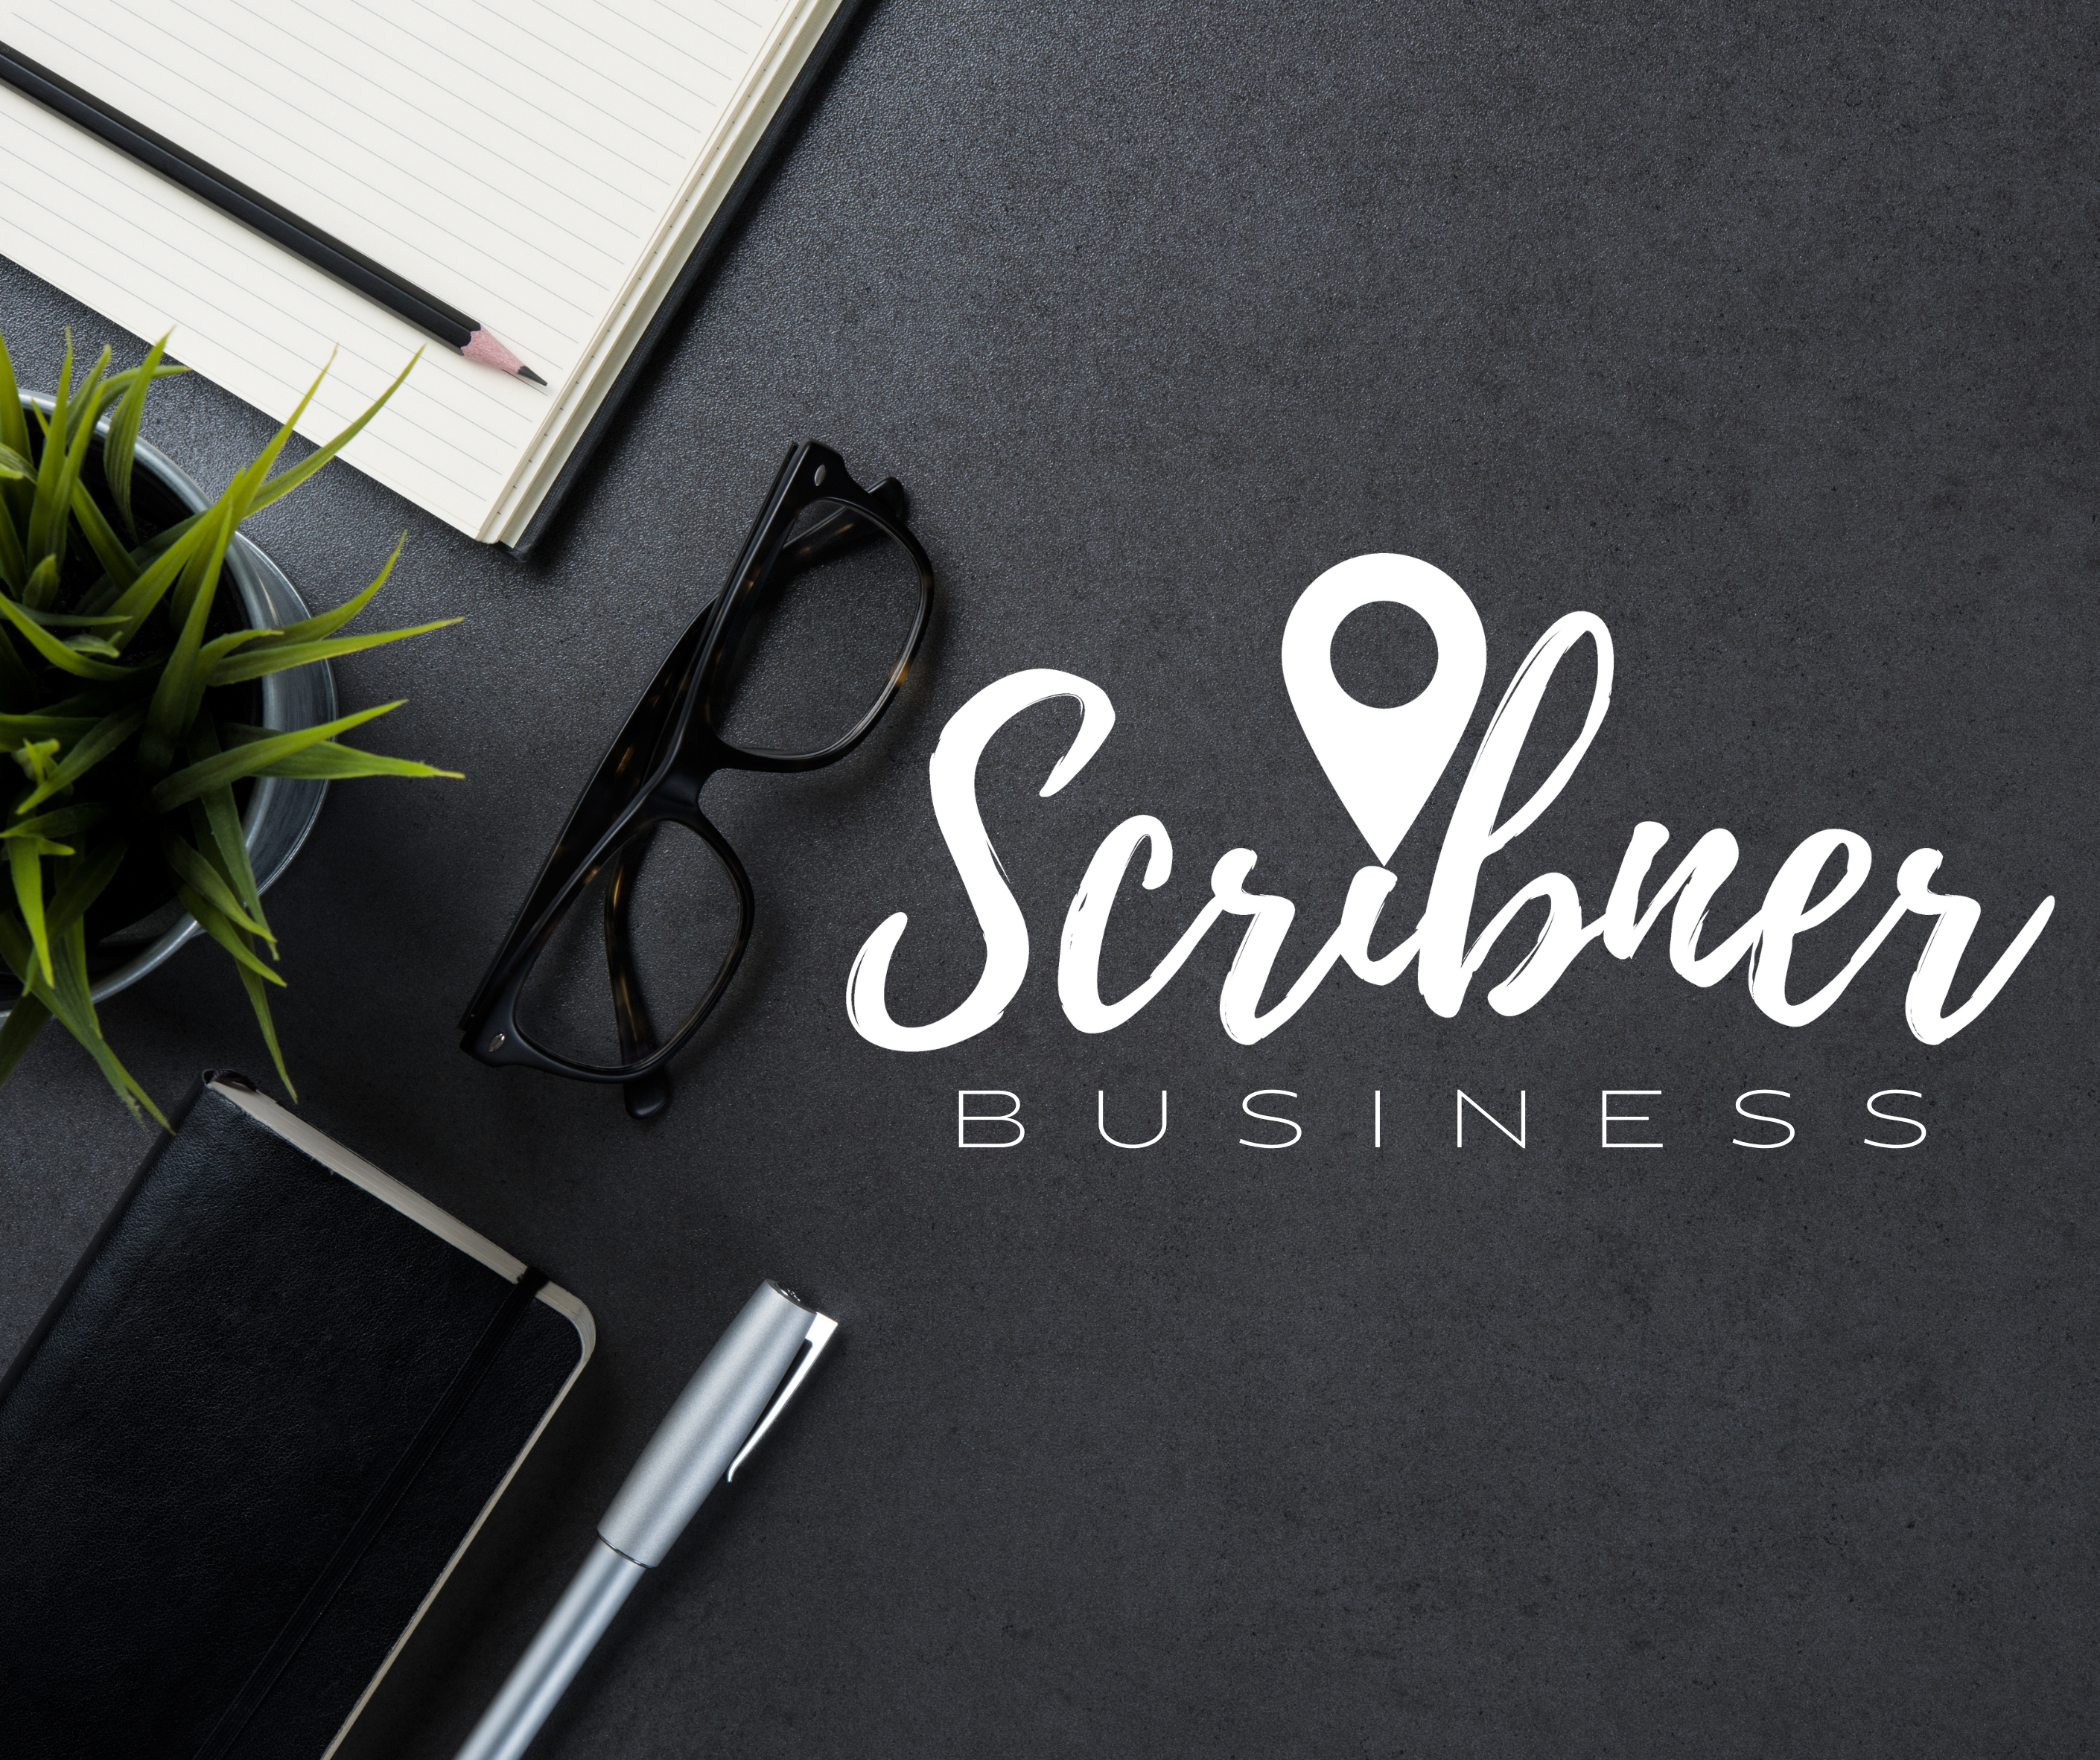 Aerial view of desk with Scribner Business written across it